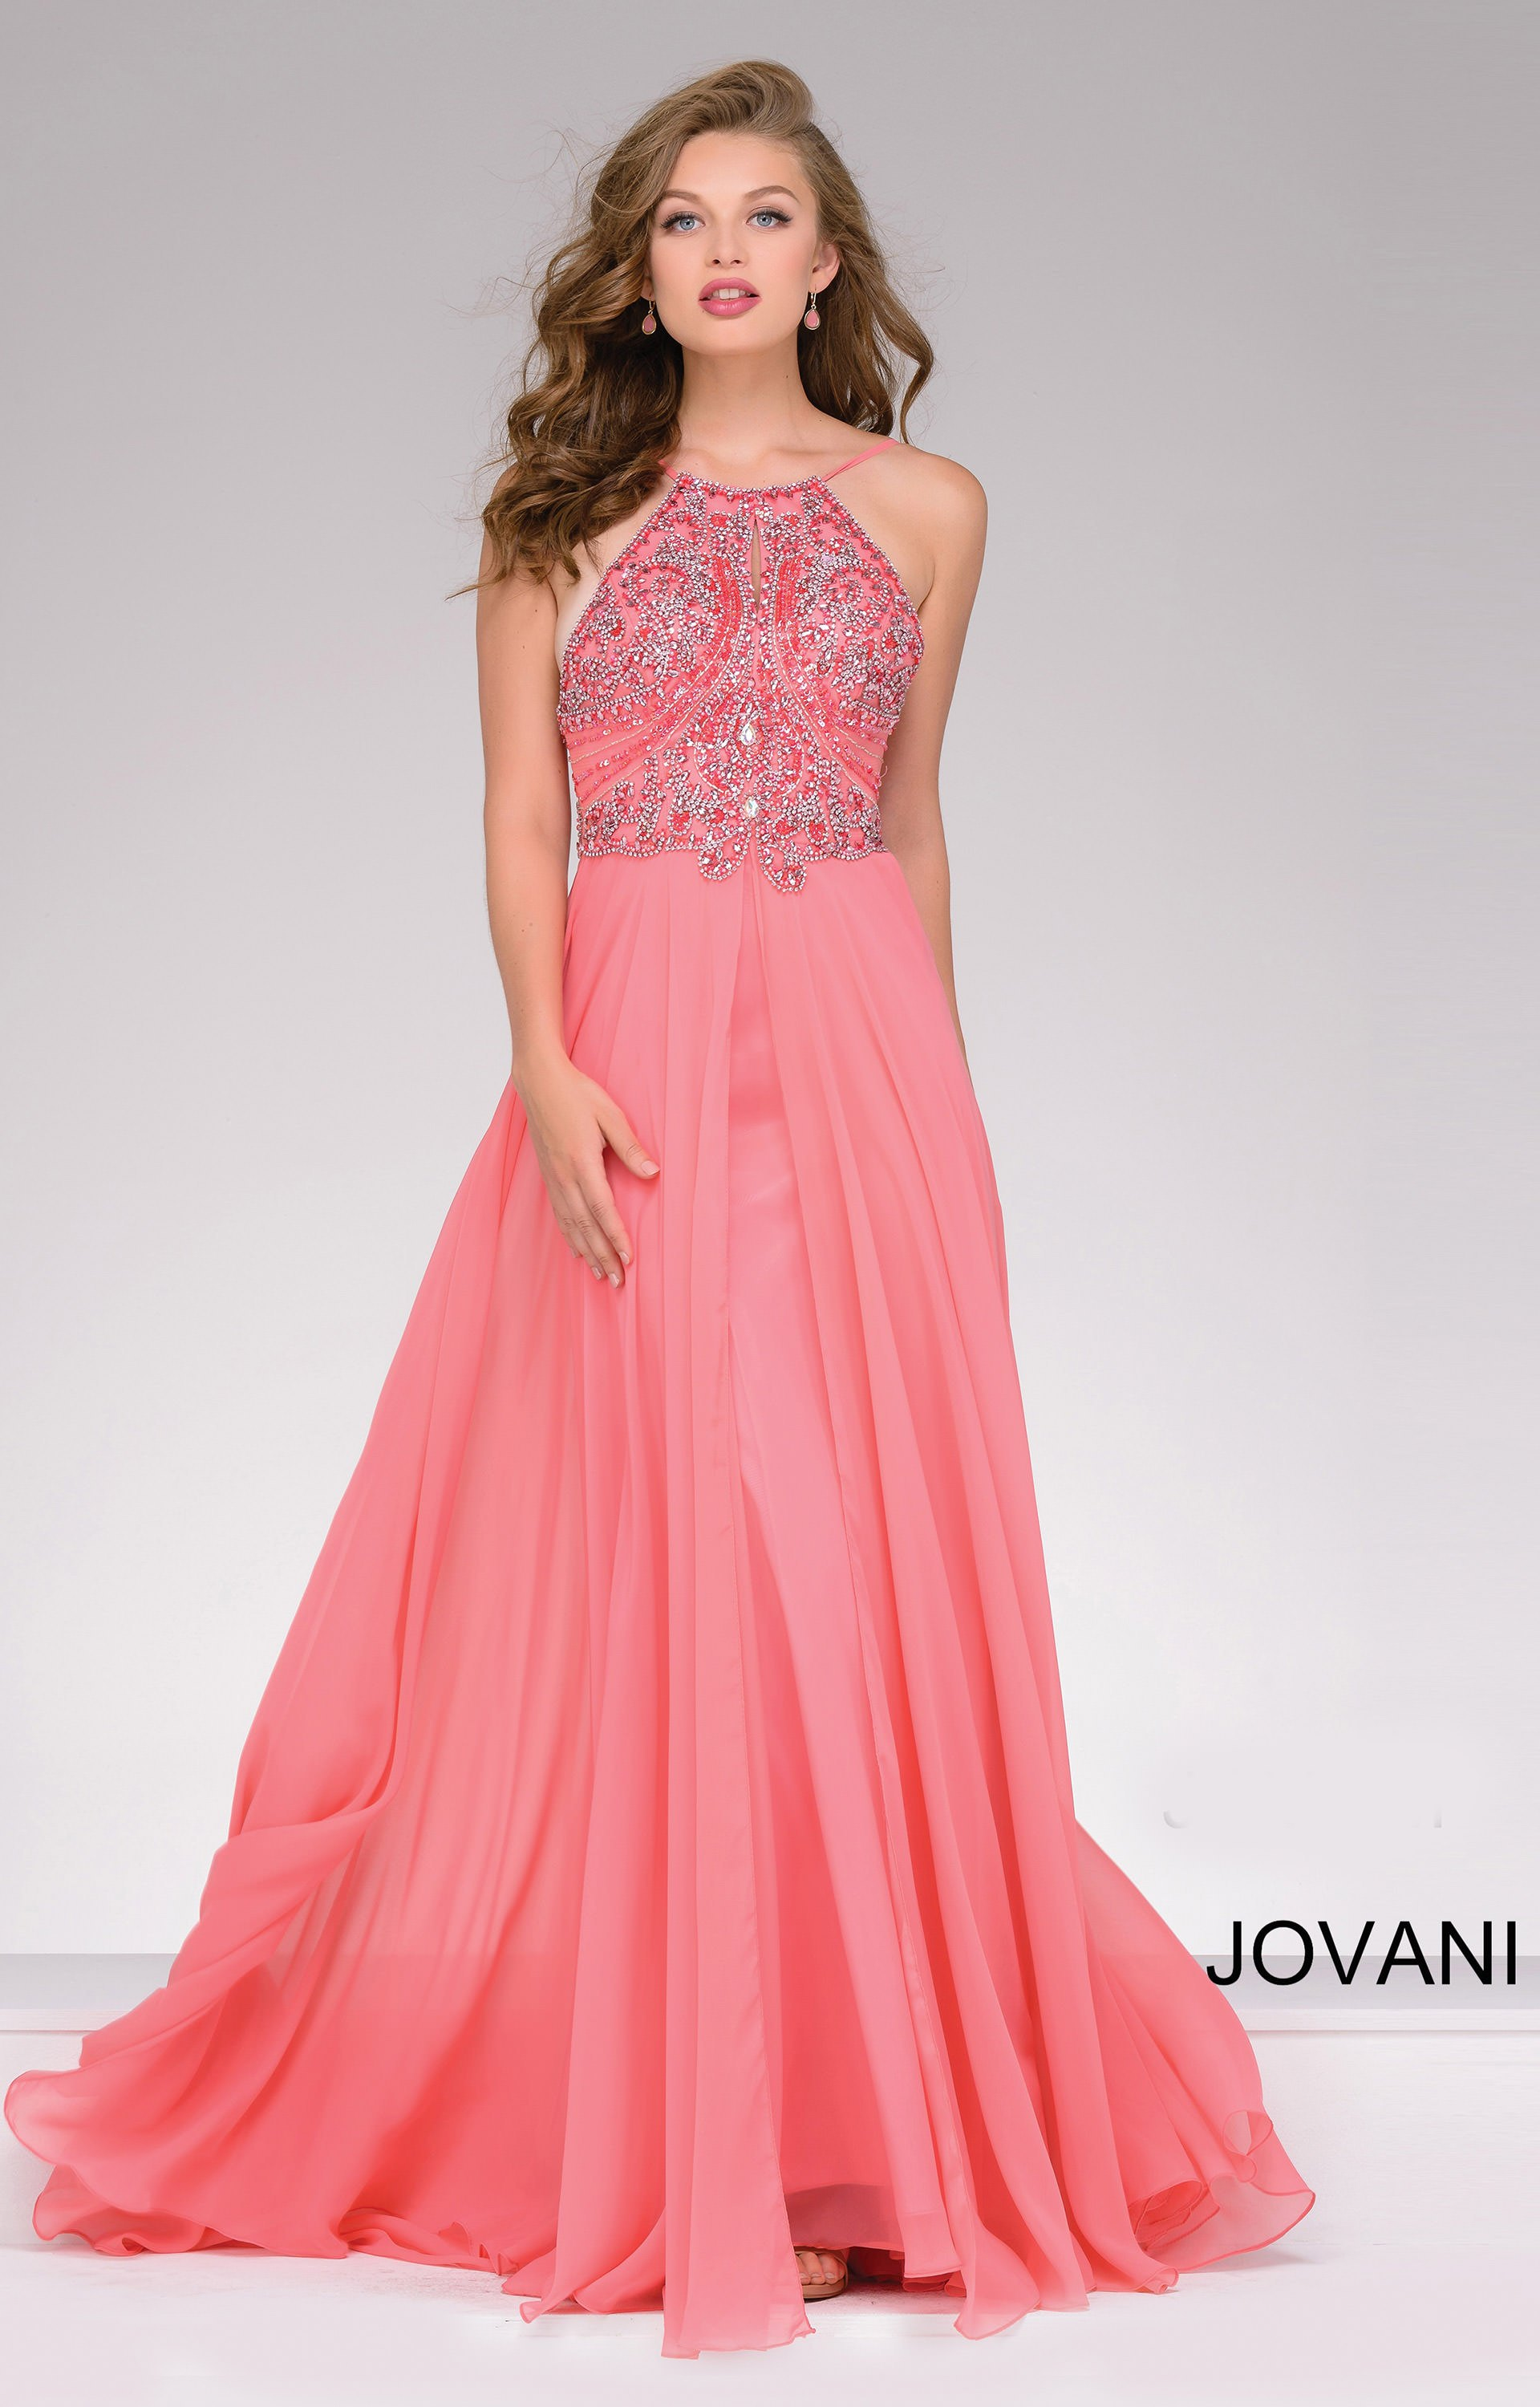 Jovani 92605 - Beaded Top with Flowy Chiffon Skirt Prom Dress